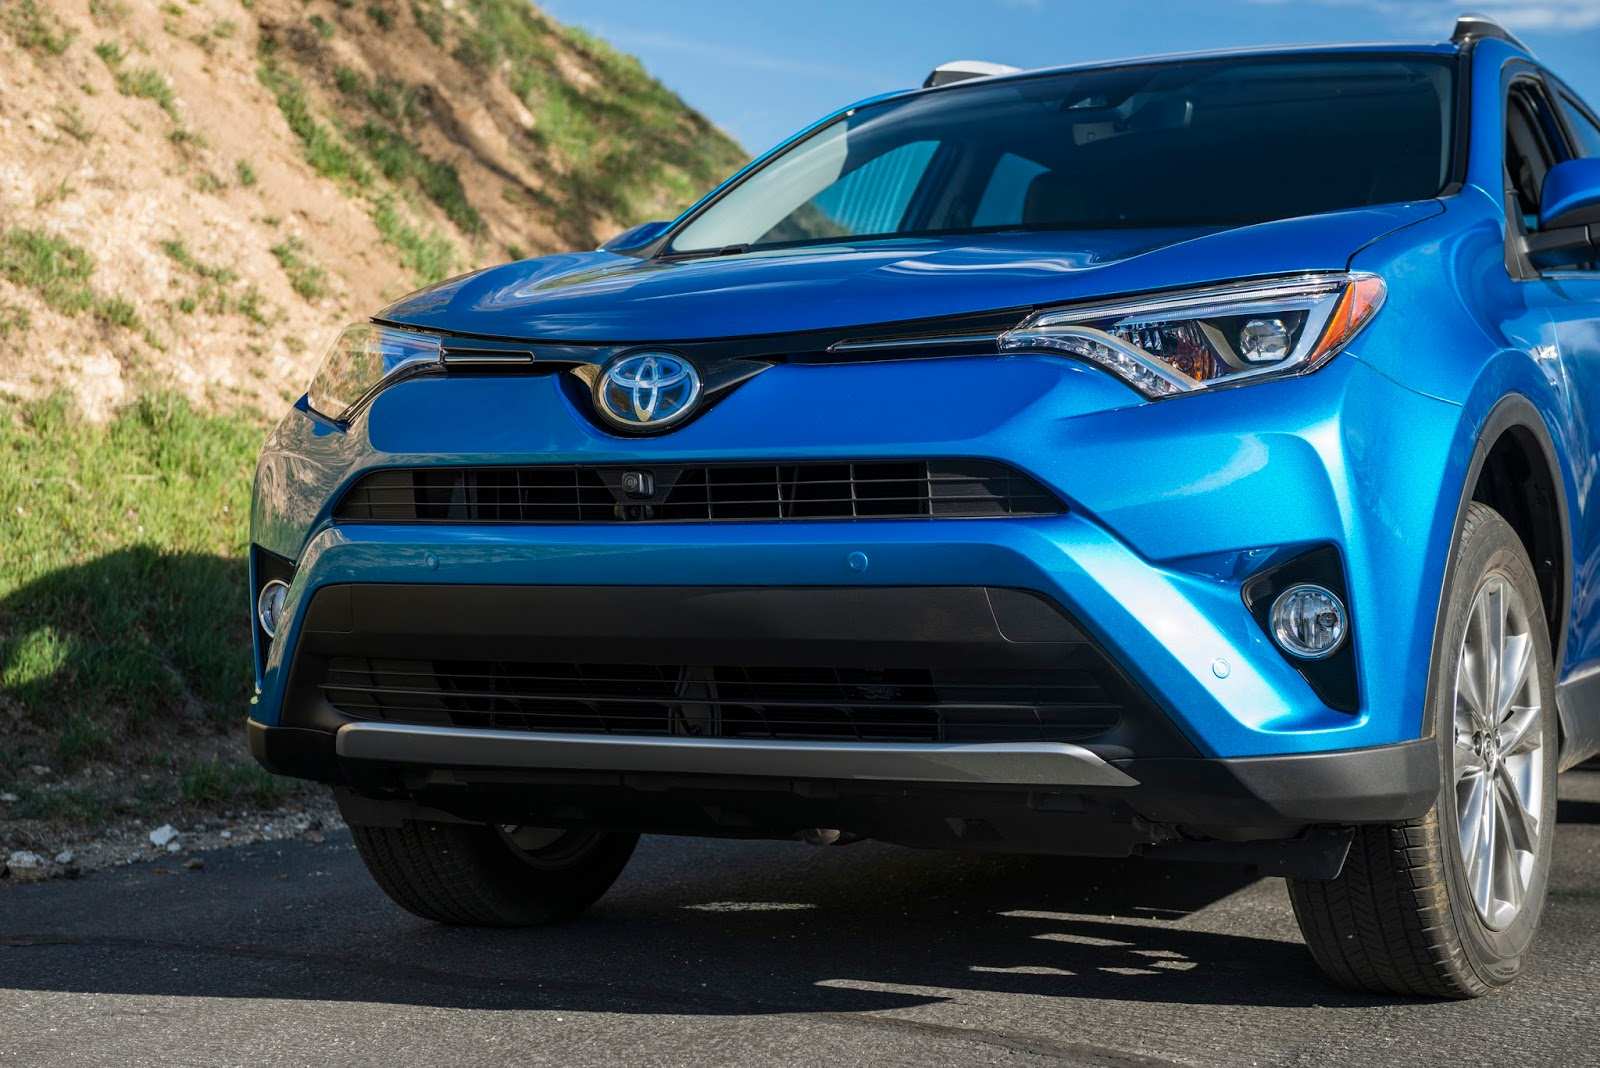 Toyota RAV4 Owners Manual: If your vehicle has tobe stopped in anemergency